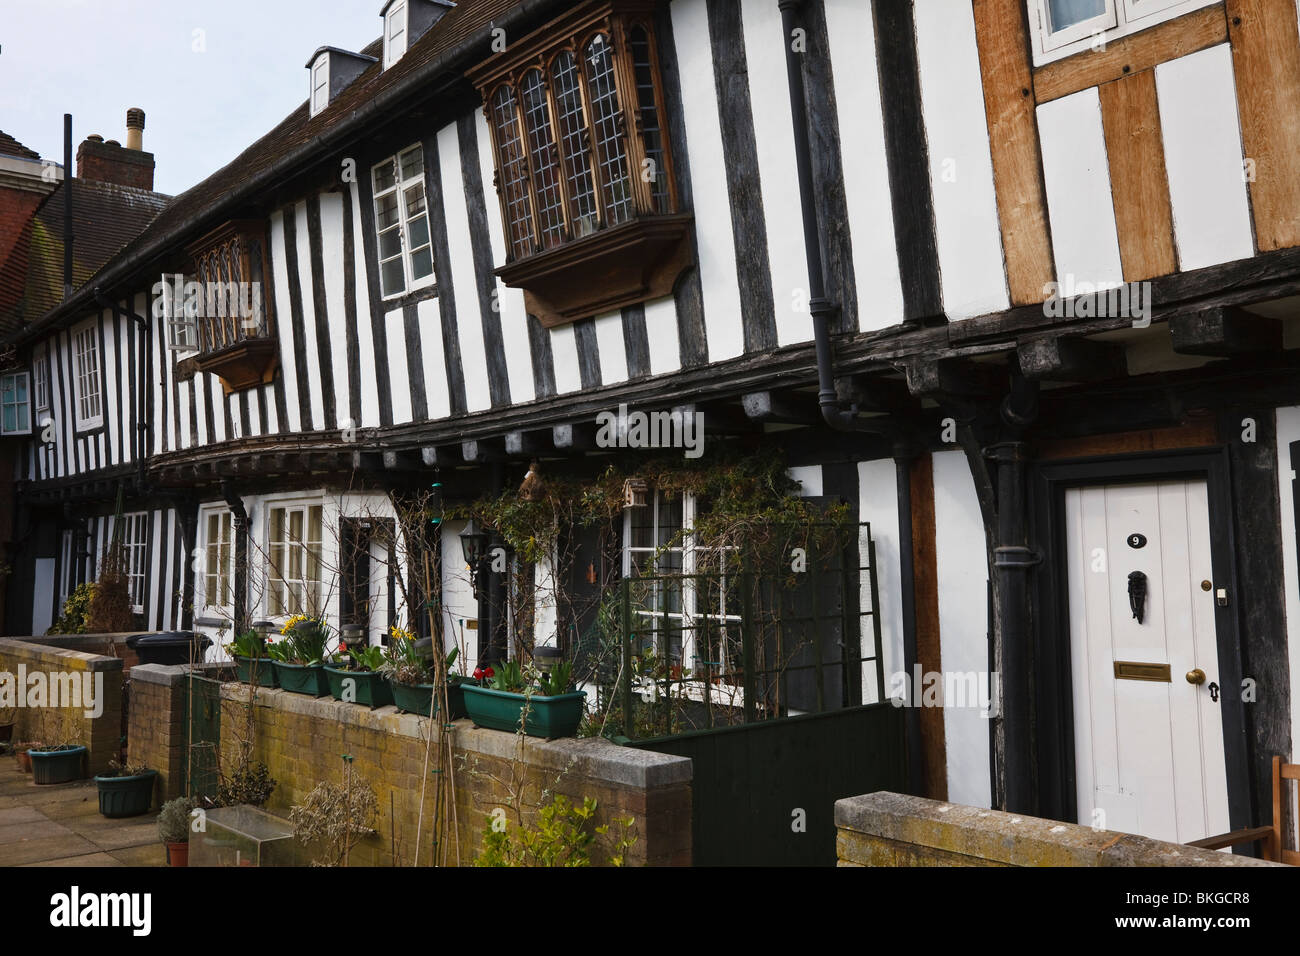 Timber framed Tudor houses in Vicar's Close, Lichfield Cathedral Close, Staffordshire. - Stock Image